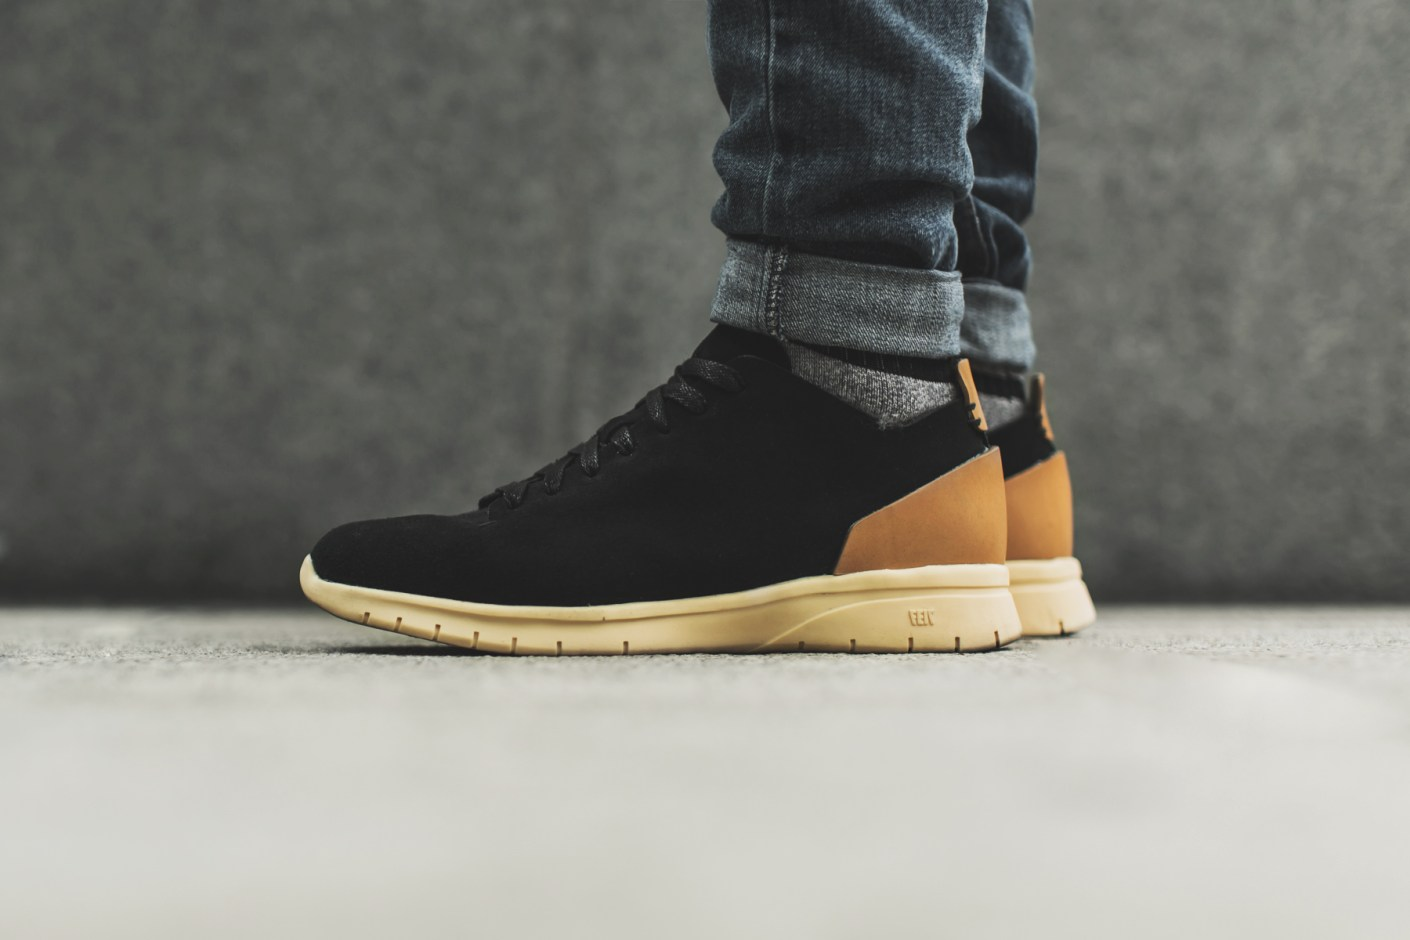 Image of A Closer Look at the FEIT Bio Trainer Black Suede